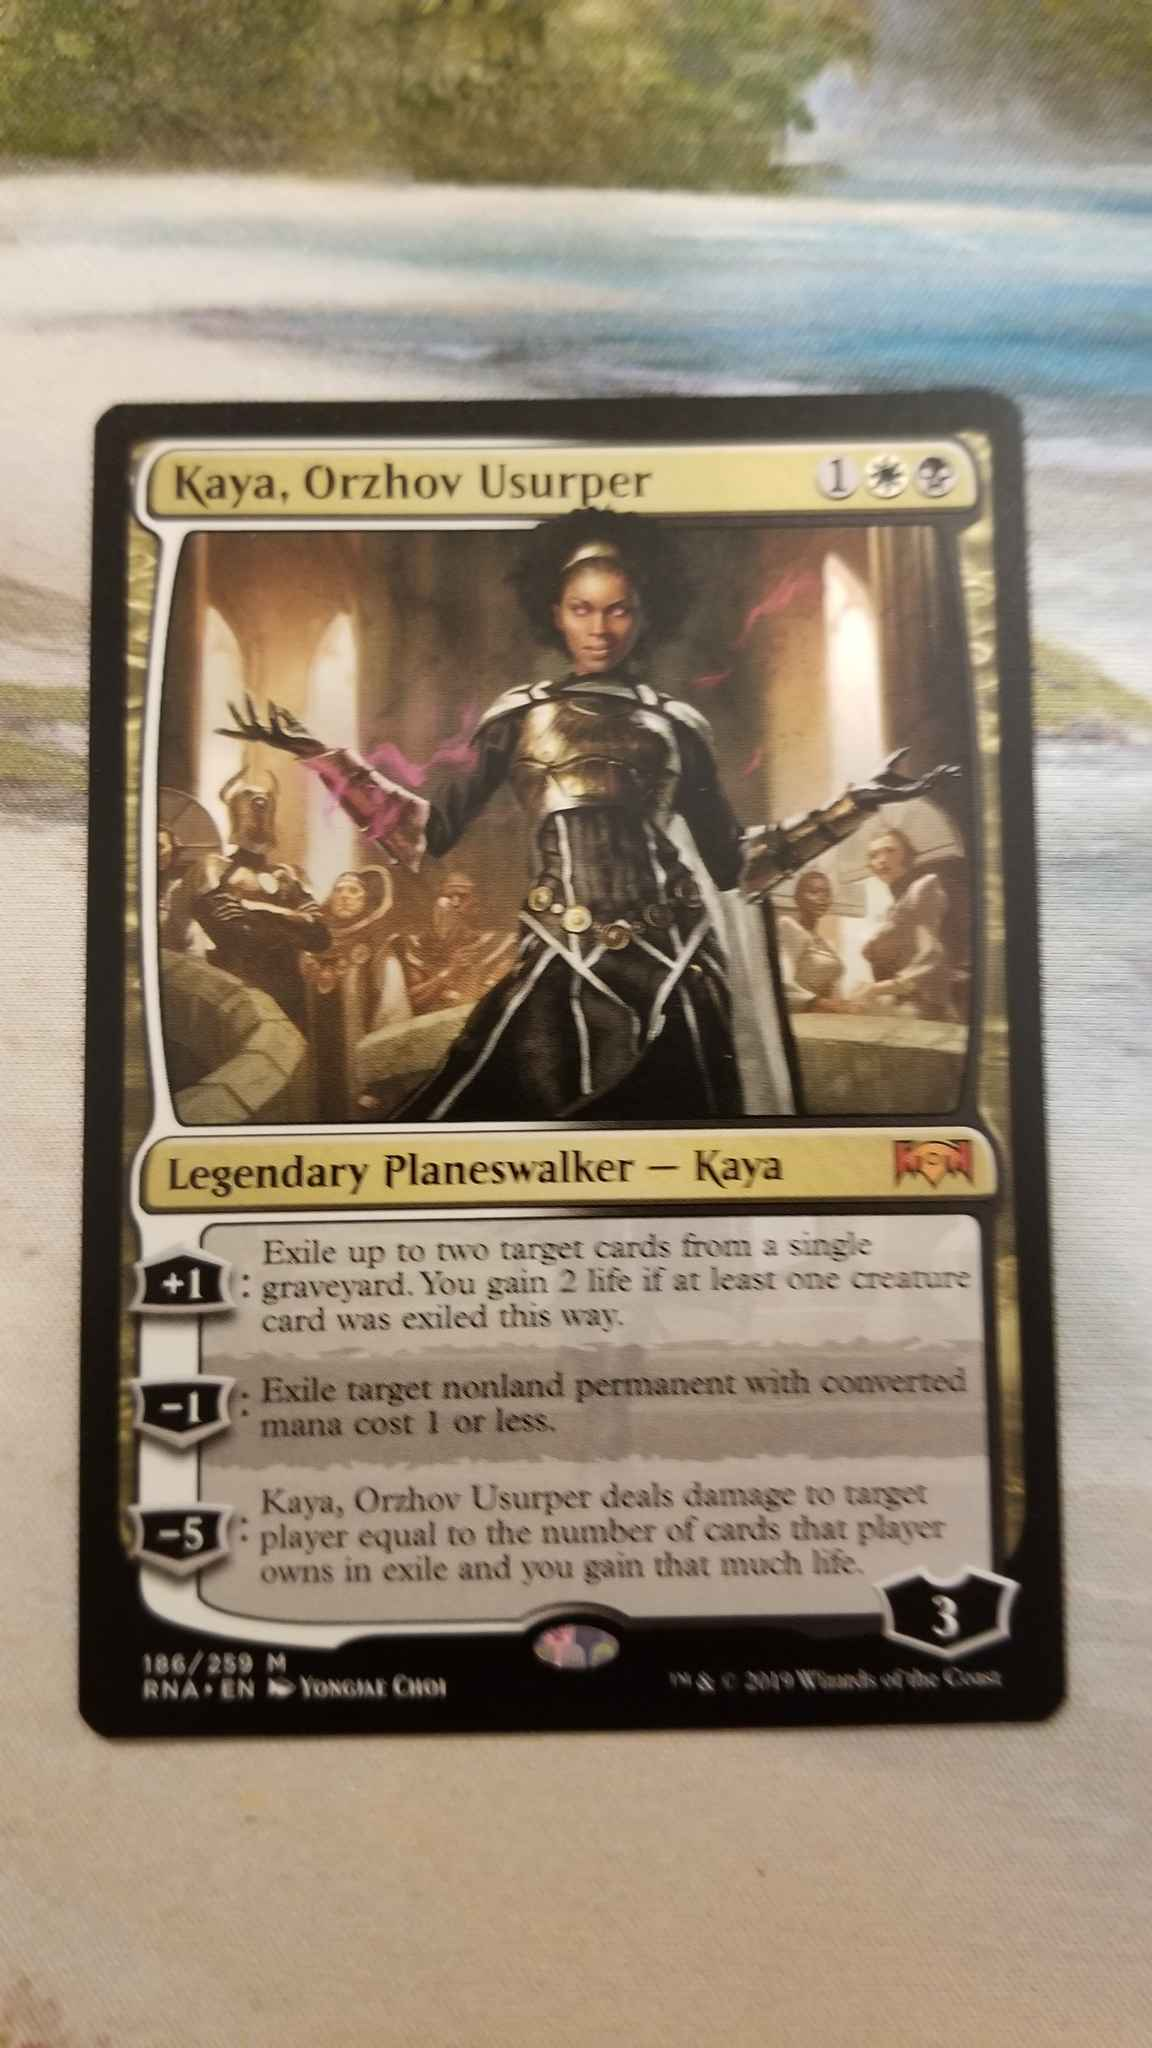 Kaya Orzhov Usurper Kaya Orzhov Usurper Ravnica Allegiance Magic The Gathering Online Gaming Store For Cards Miniatures Singles Packs Booster Boxes Kaya, orzhov usurper deals damage to target player equal to the number of cards that player owns in exile and you gain that much life. kaya orzhov usurper